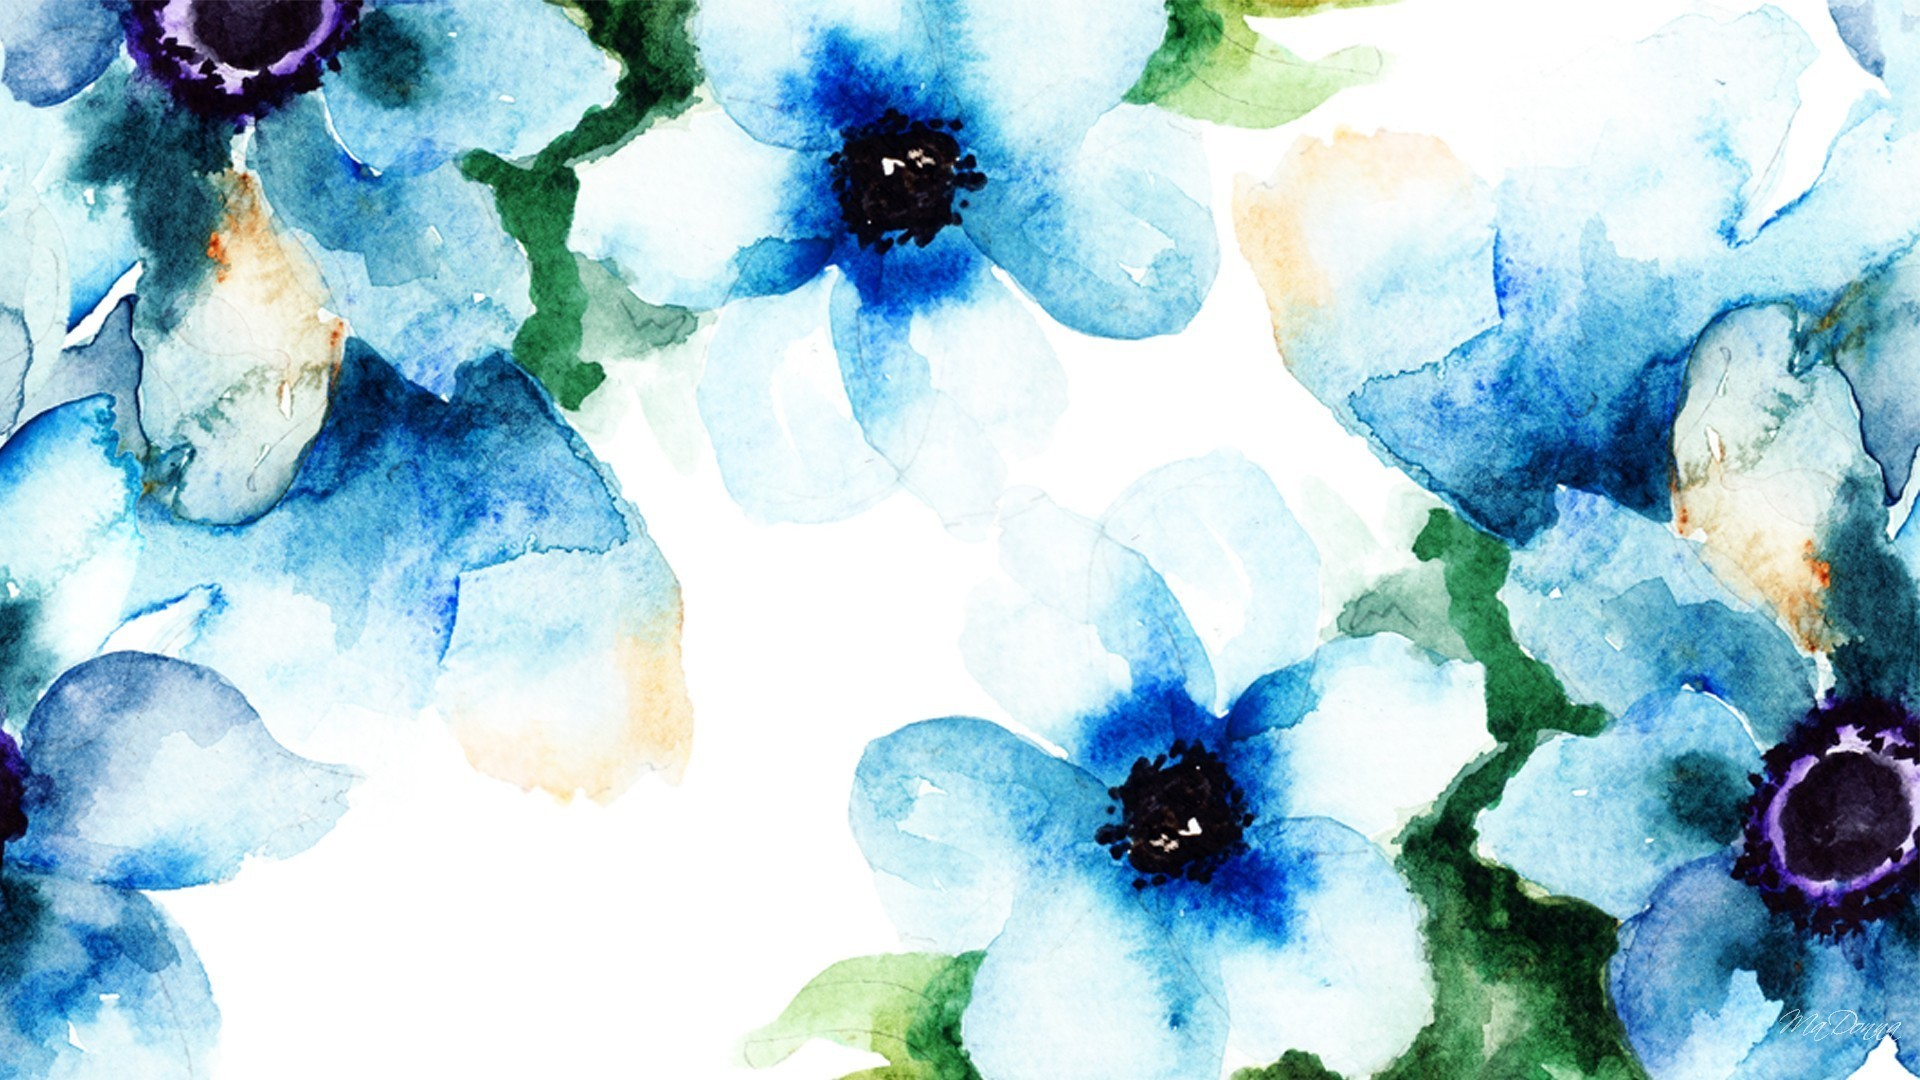 1920x1080 30 Free Beautiful Watercolor Wallpapers That Should Be on Your Desktop - 30  | Wallpapers | Pinterest | Watercolor wallpaper, Wallpaper and Watercolor